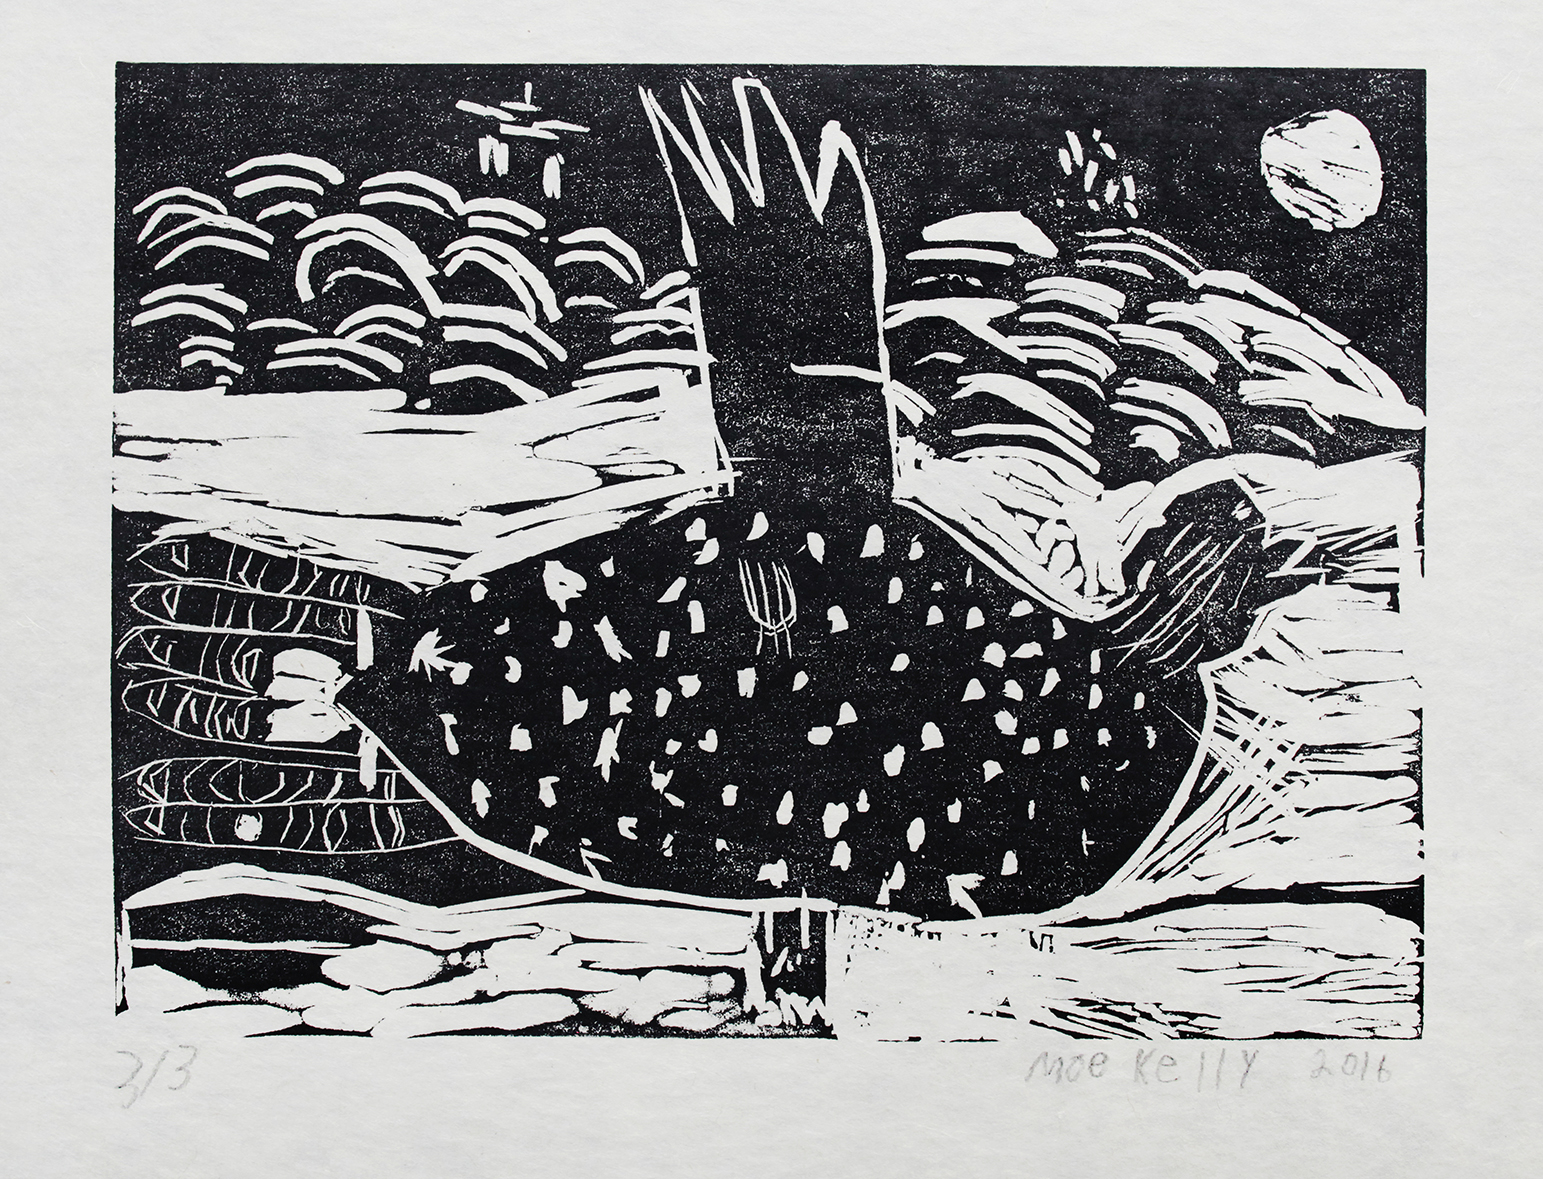 """Untitled    Moe Kelly  Two-Layer Linocut on Washi  15.5 x 21.5"""""""